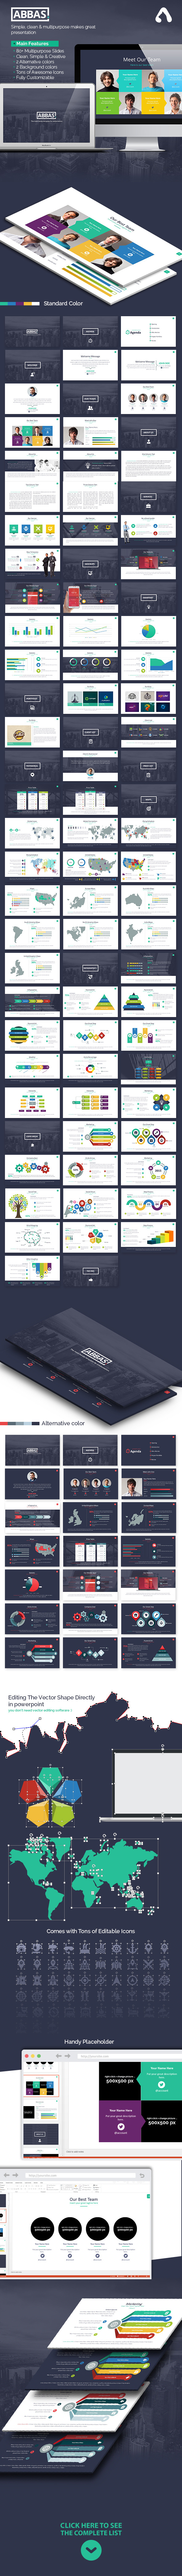 GraphicRiver Abbas Powerpoint Template 11061706